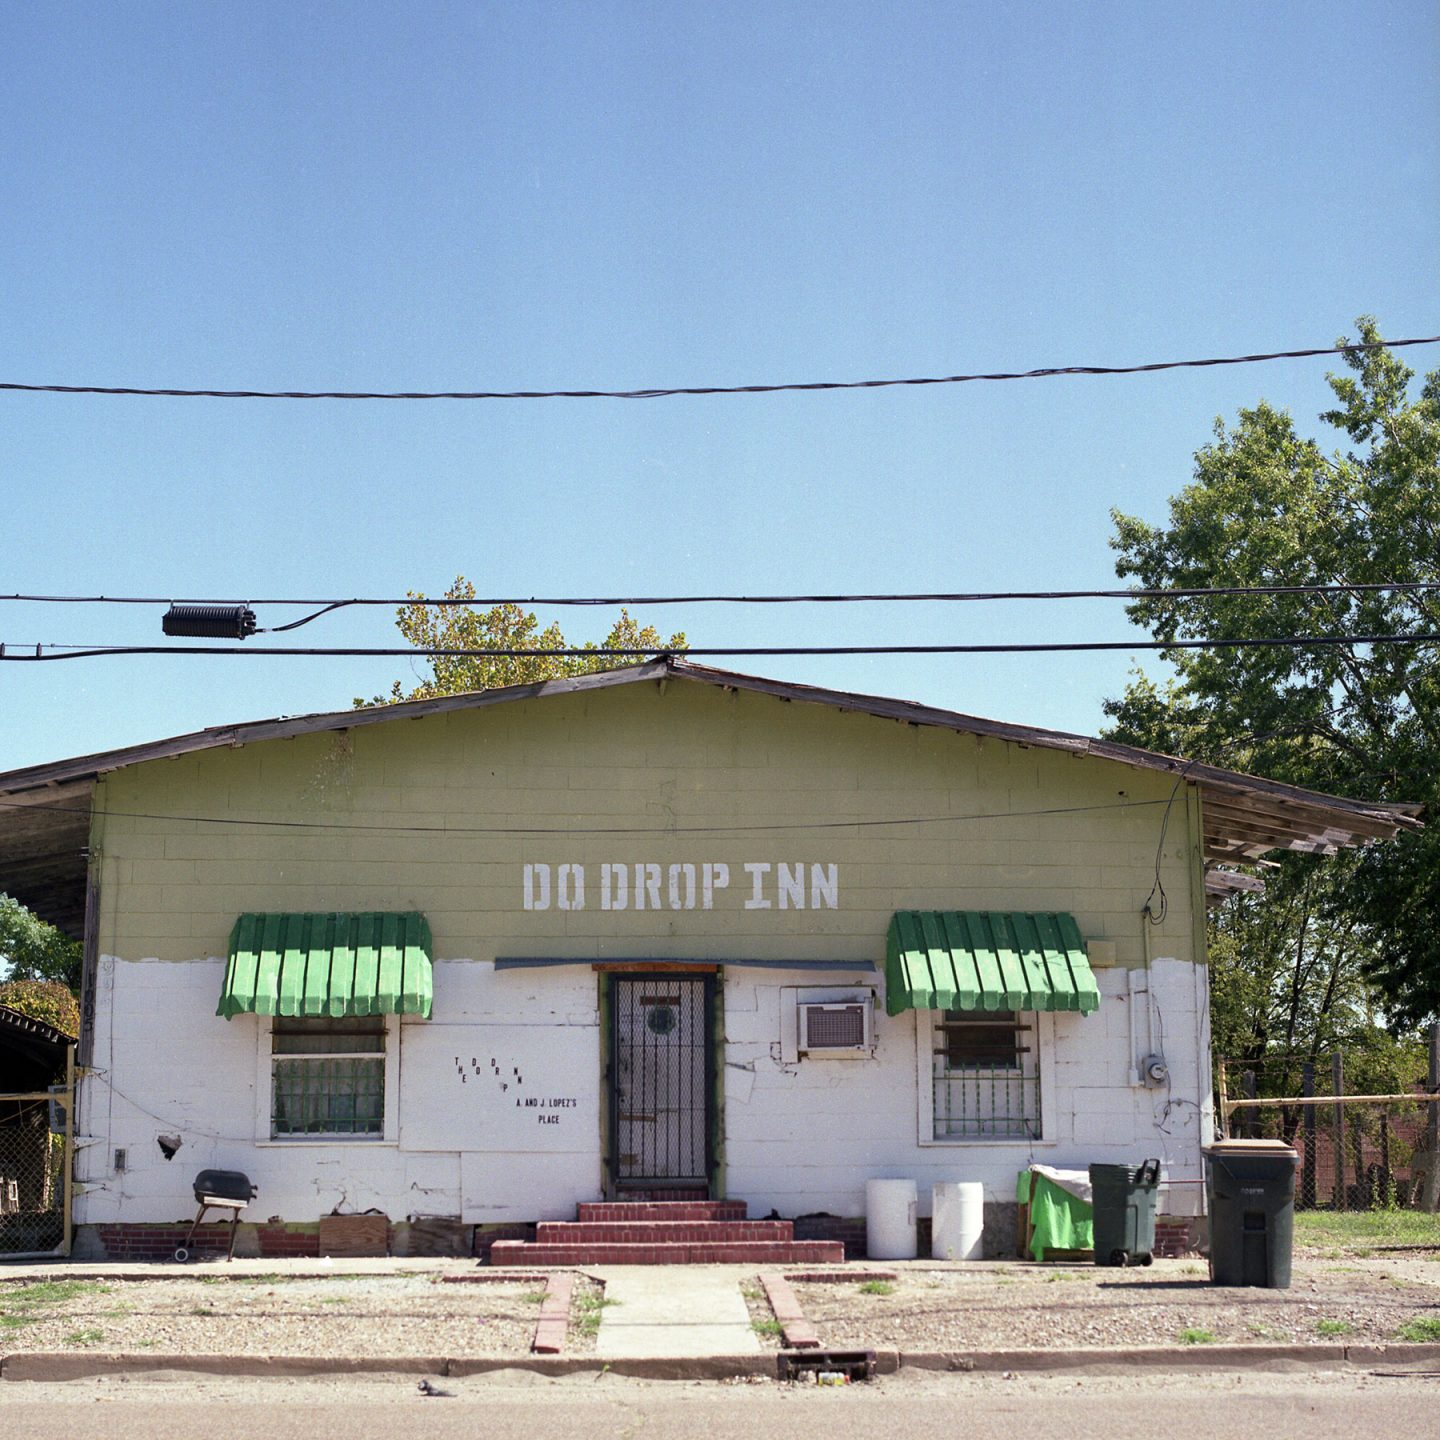 Cafe's and Juke Joints – Hasselblad 500cm FujiColor Pro 160S film